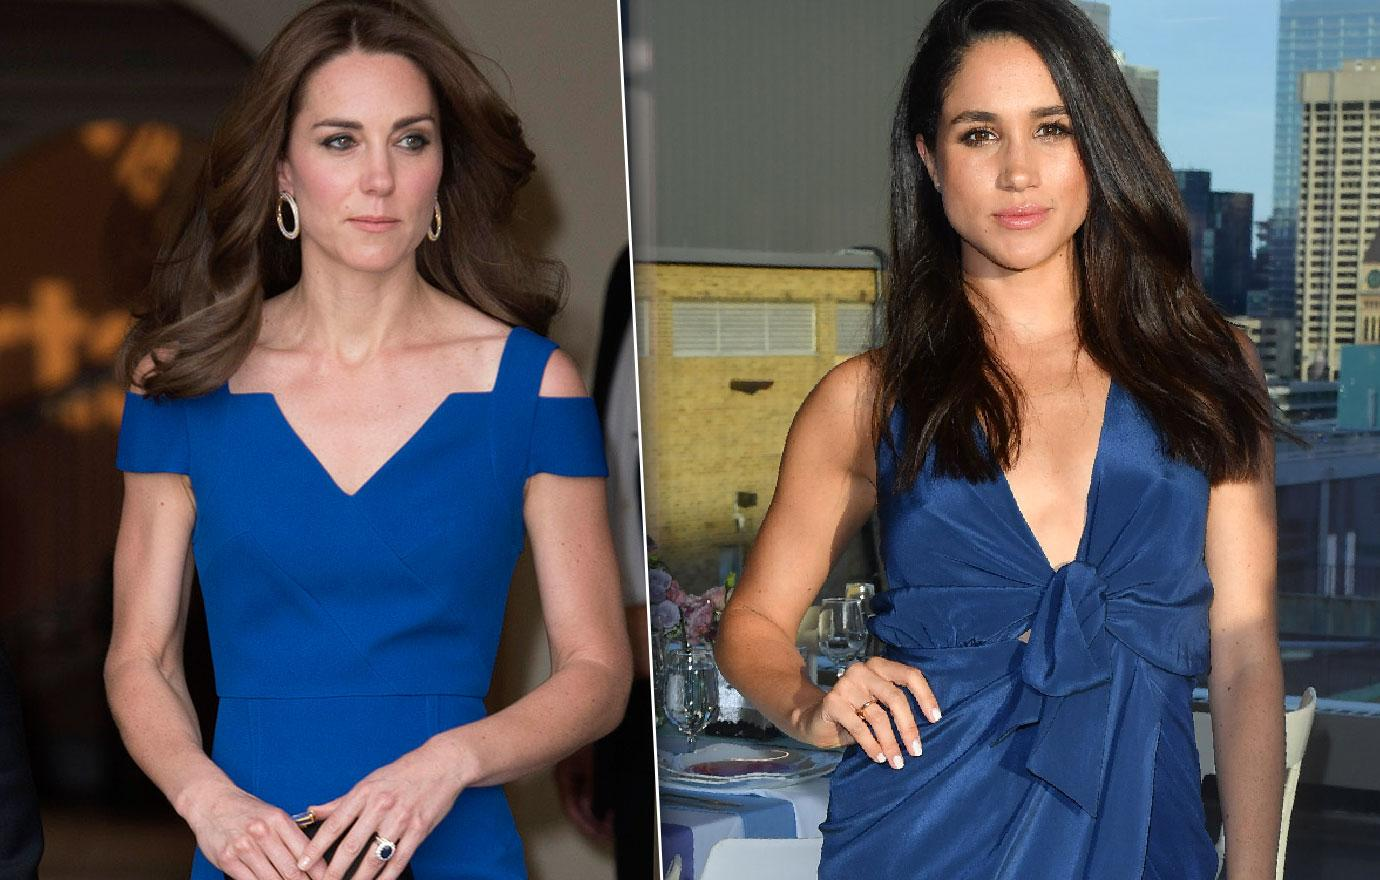 Meghan Markle Stealing Spotlight Kate Middleton Photo Comparison